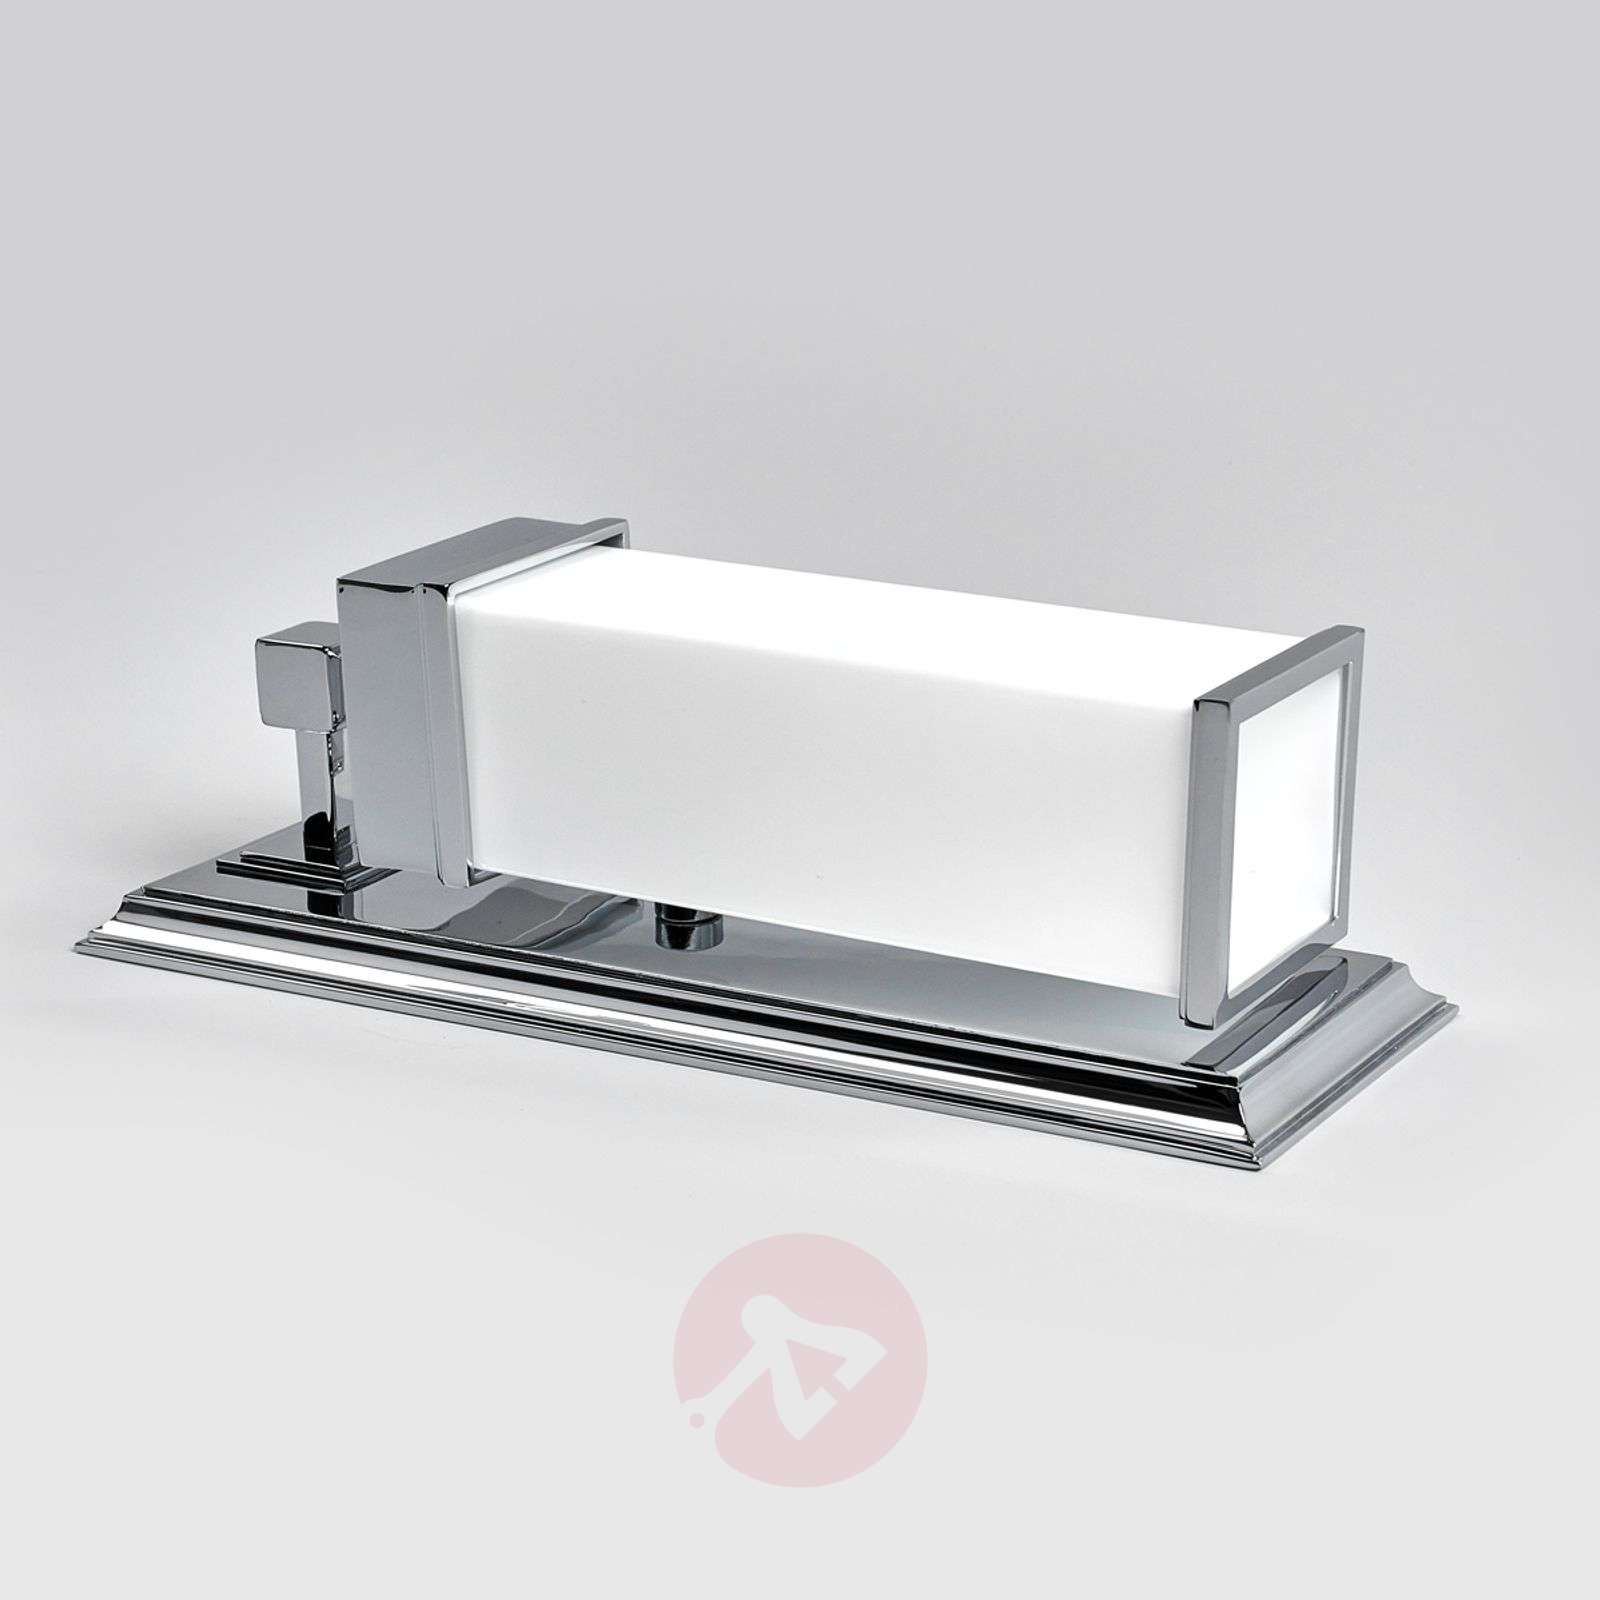 Cambridge Mirror Light Cuboid-3048148-02